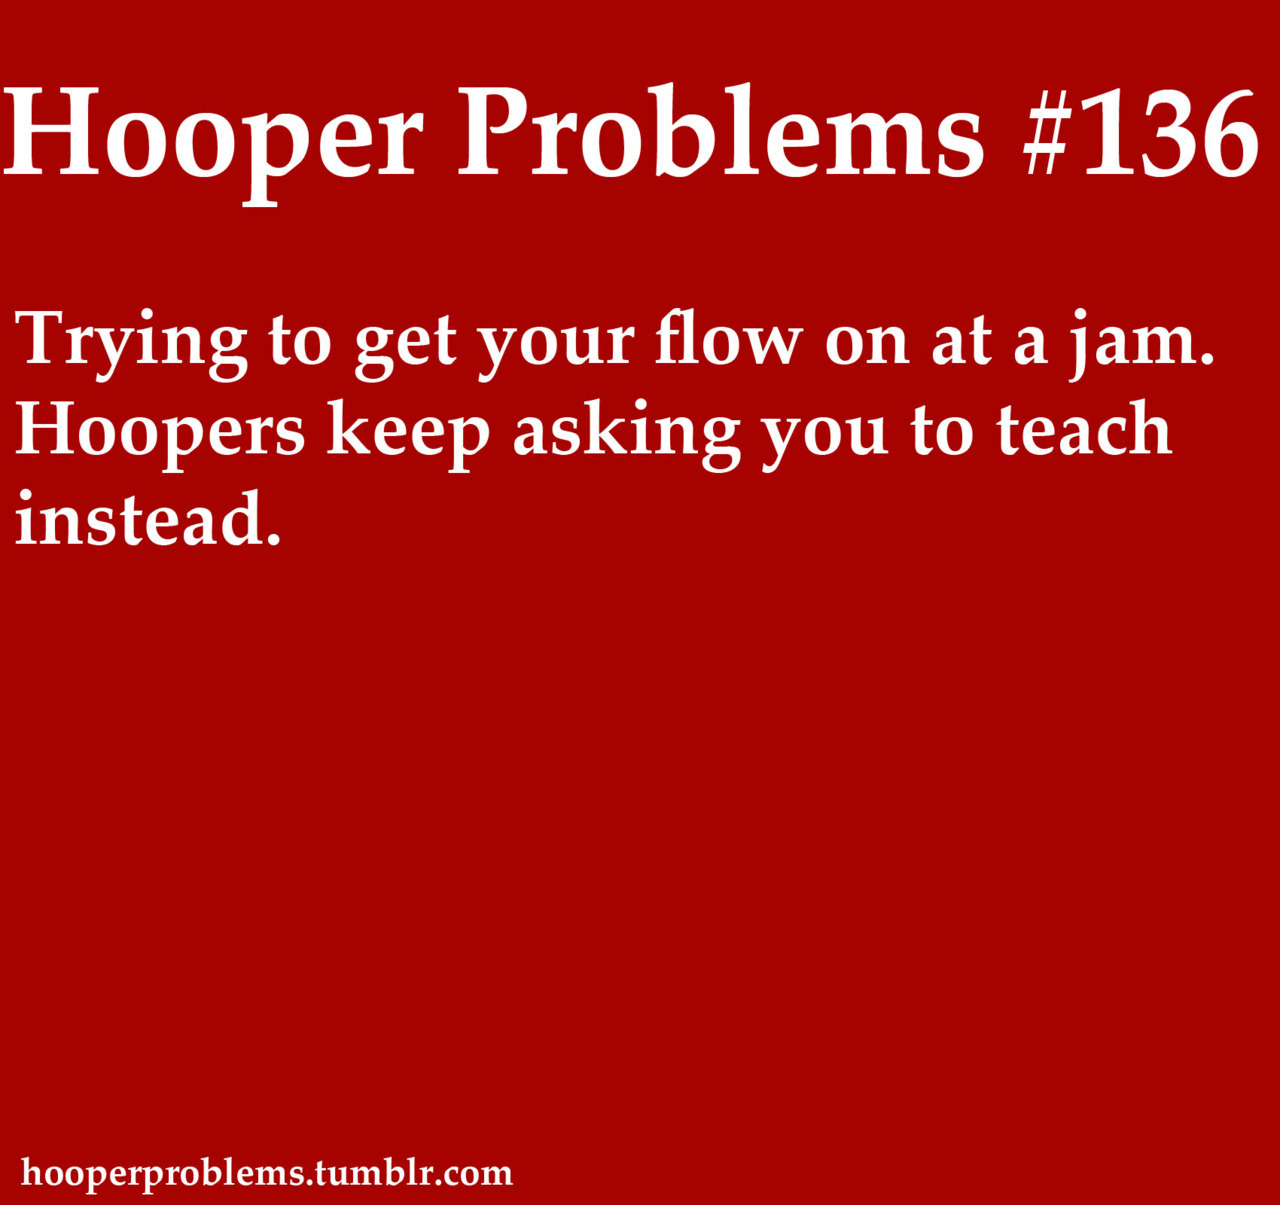 My submission to HooperProblems.tumblr.com.